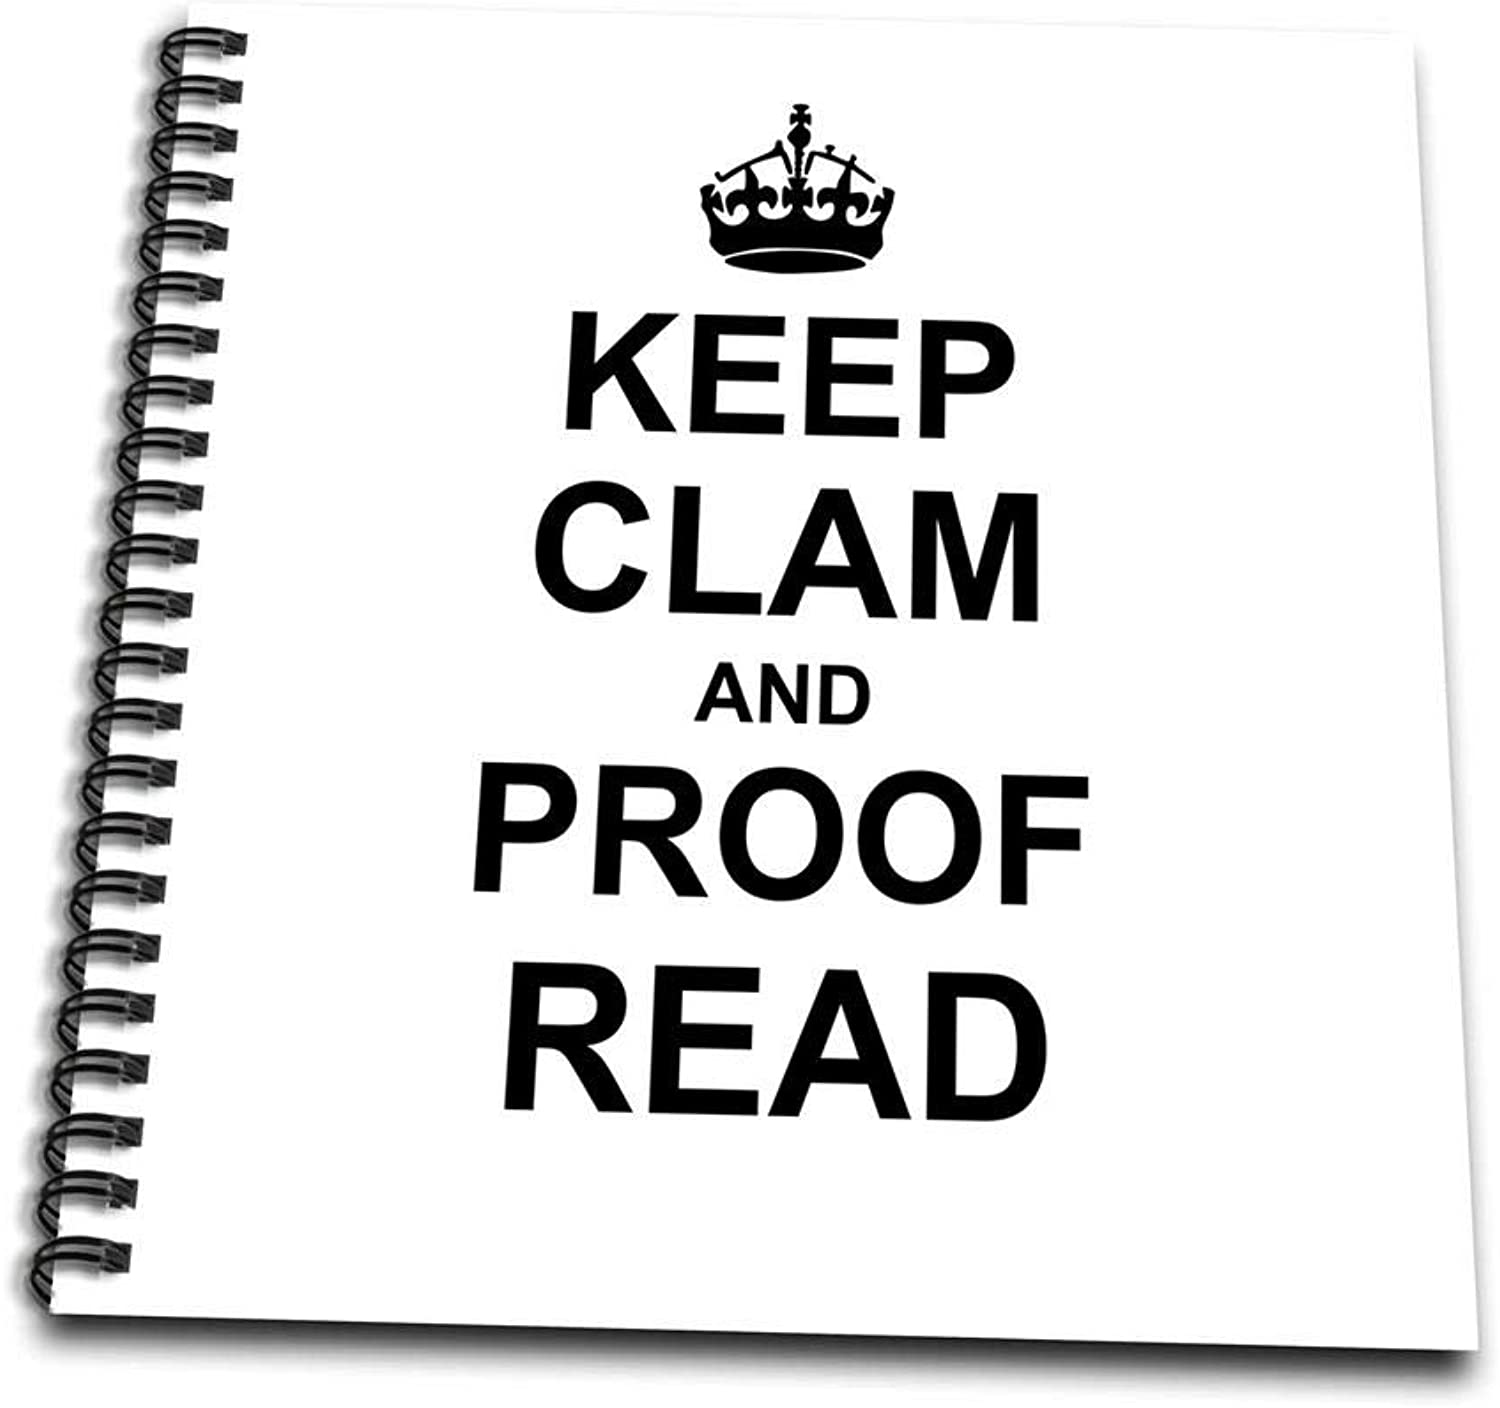 3dpink db_194448_2 Keep Clam and Proof Read  Funny Proofread Reader Writer Editor Gifts  Memory Book, 12 by 12